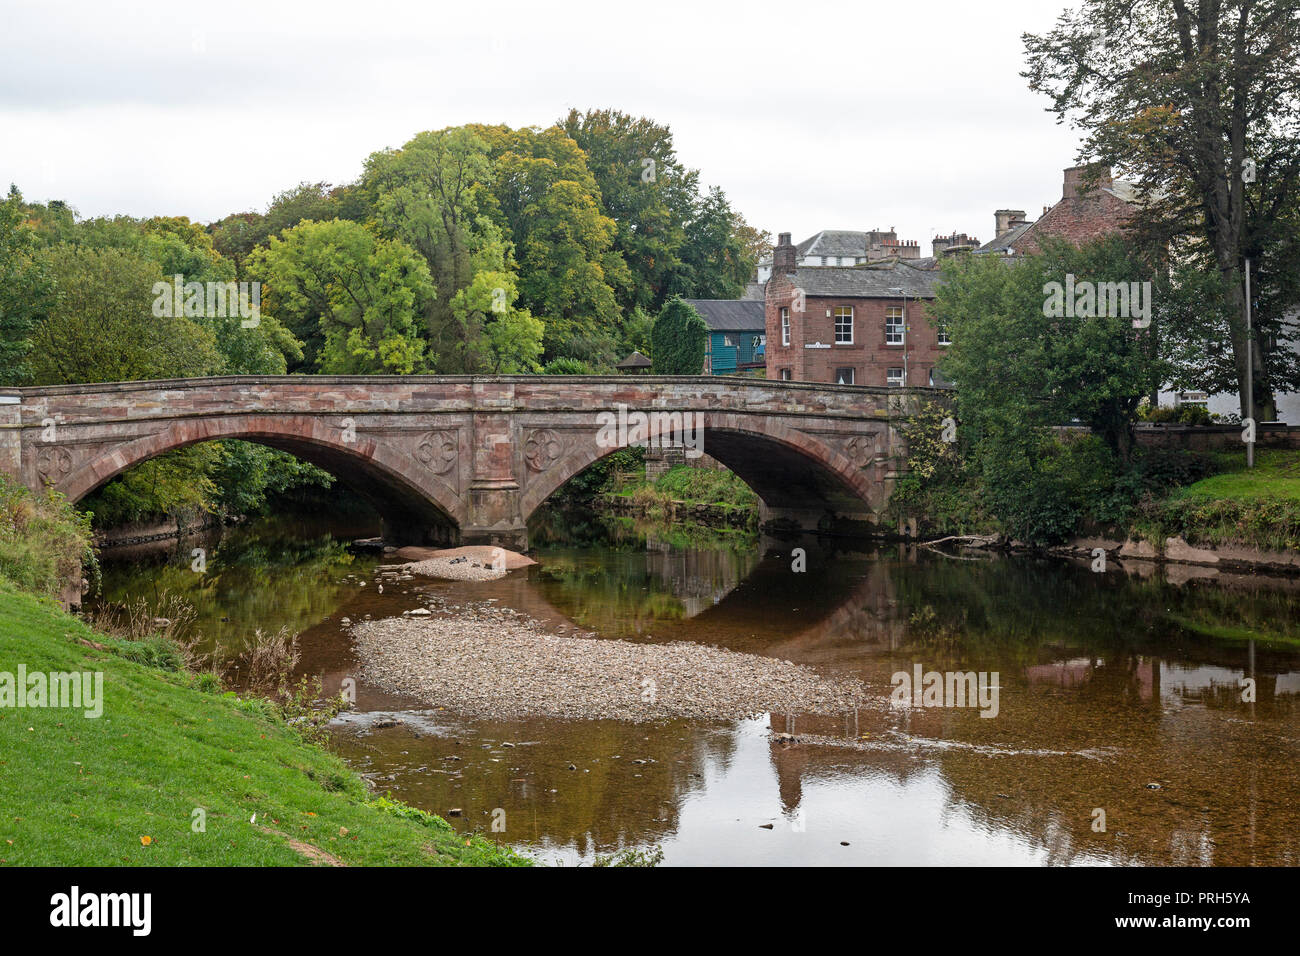 St. Lawrence's Bridge, built in 1889, spanning the River Eden, in the town of Appleby-in-Westmorland in the county of Cumbria in England. - Stock Image